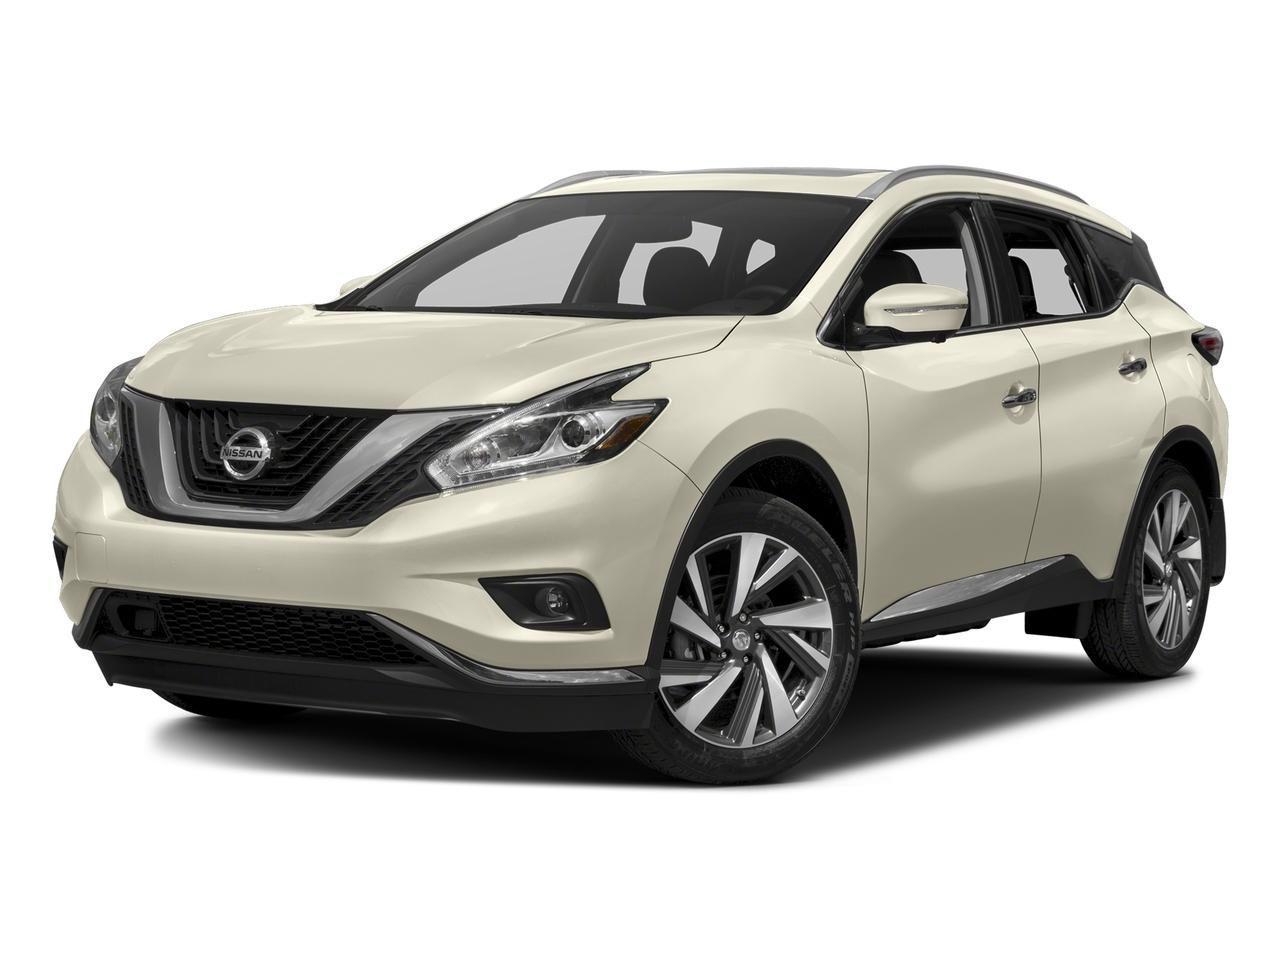 2016 Nissan Murano Vehicle Photo in Vincennes, IN 47591